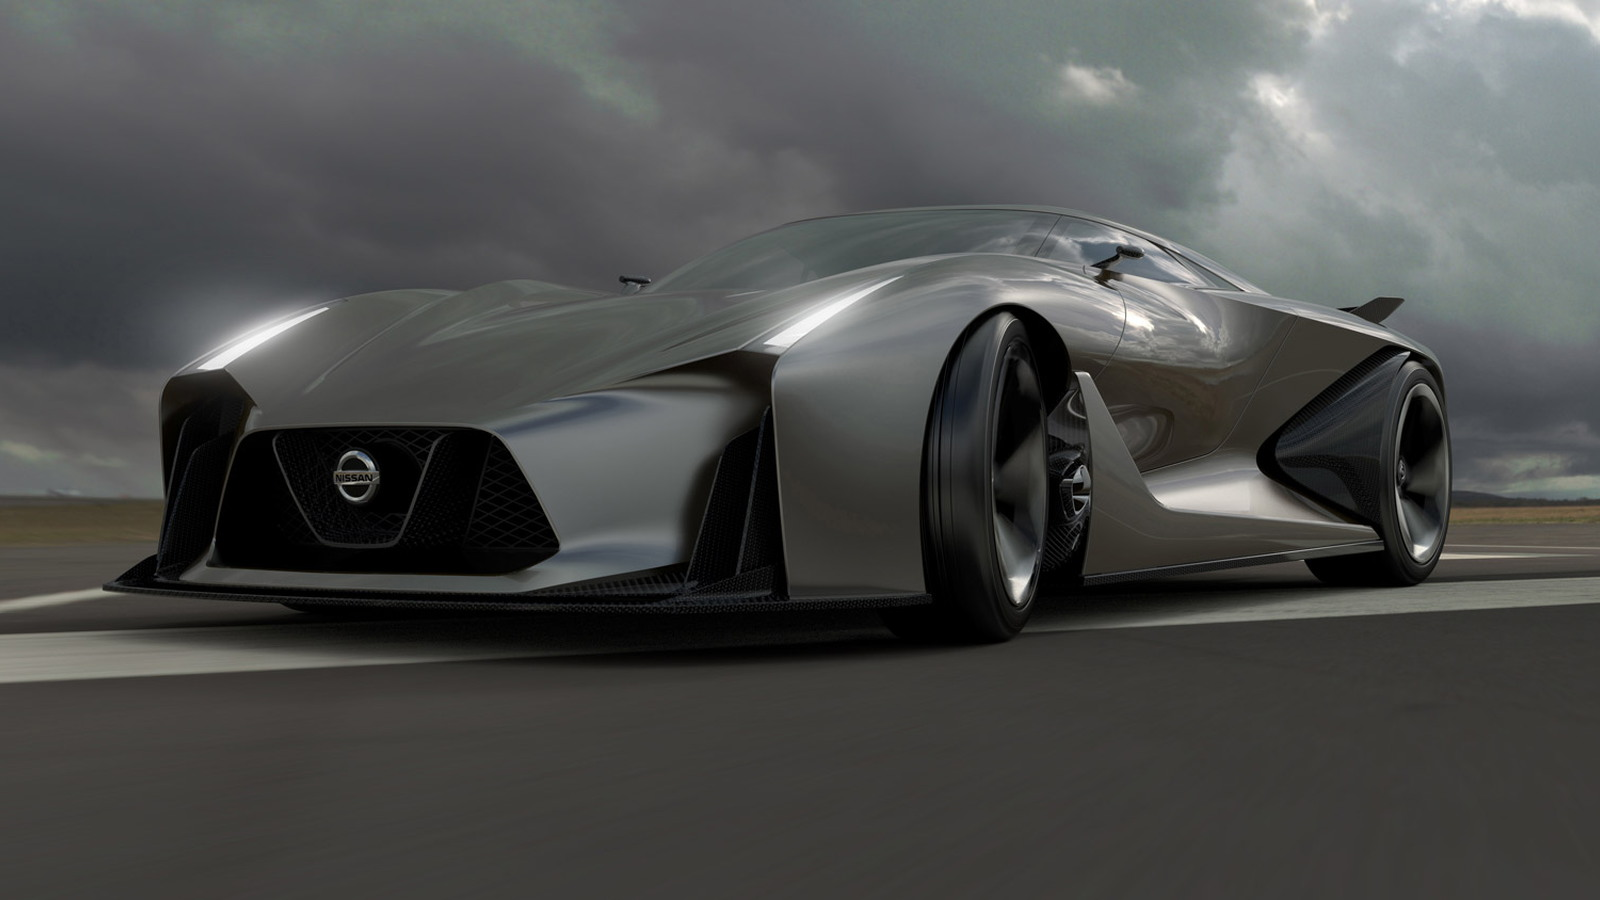 Nissan Concept 2020 Vision Gran Turismo Revealed Likely